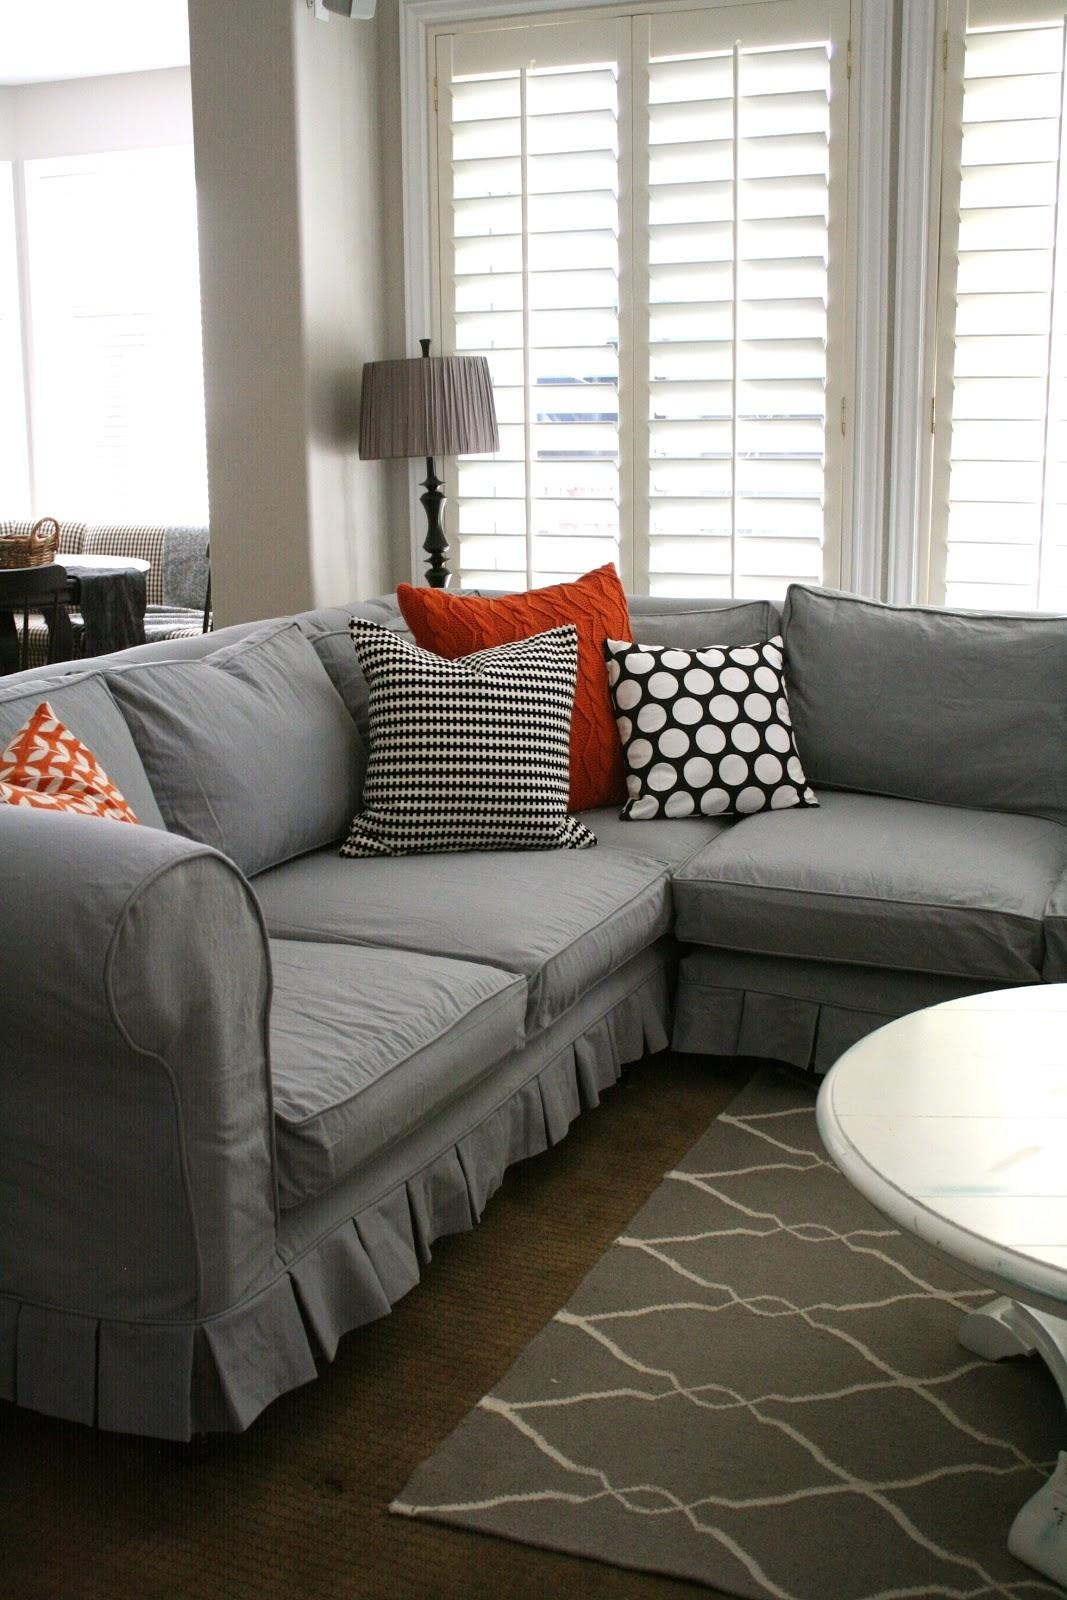 Furniture: Slipcovers For Sectional That Applicable To All Kinds Intended For Slipcovers For Sectional Sofas With Recliners (View 2 of 20)